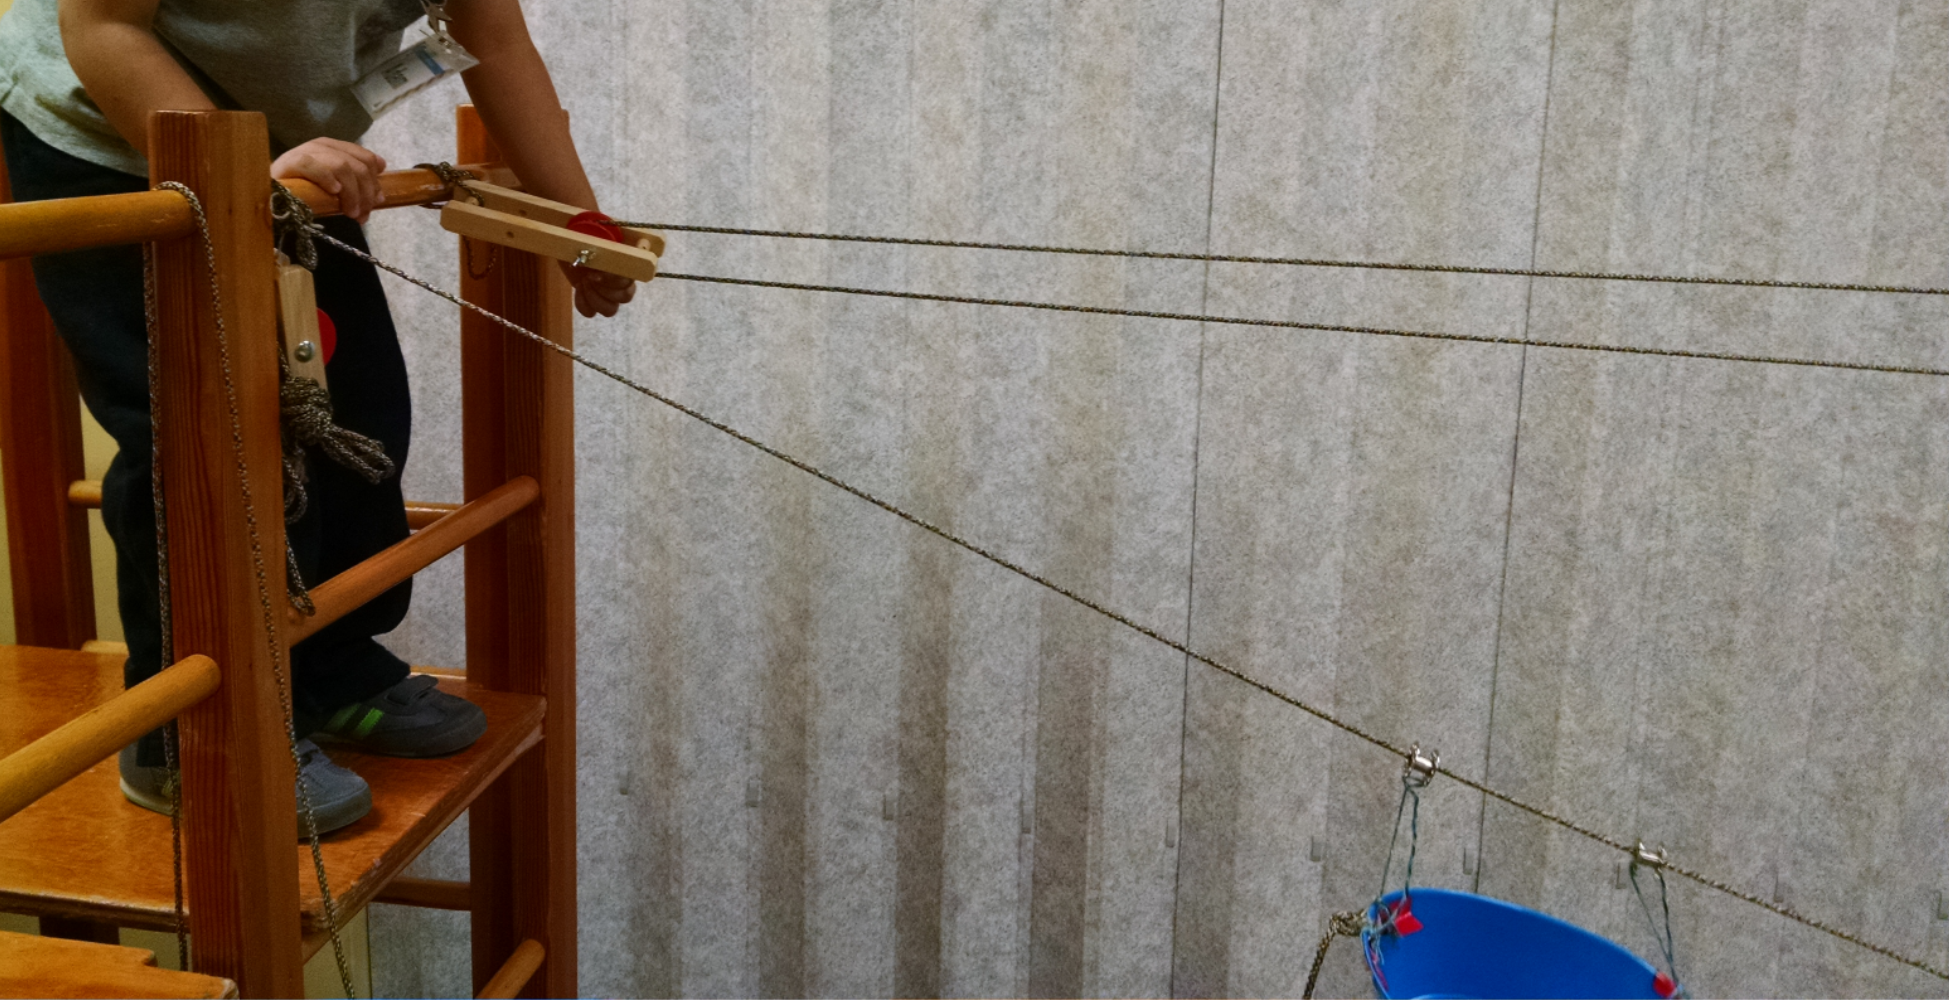 Pulleys Simple Machines Activities For Kids Inventors